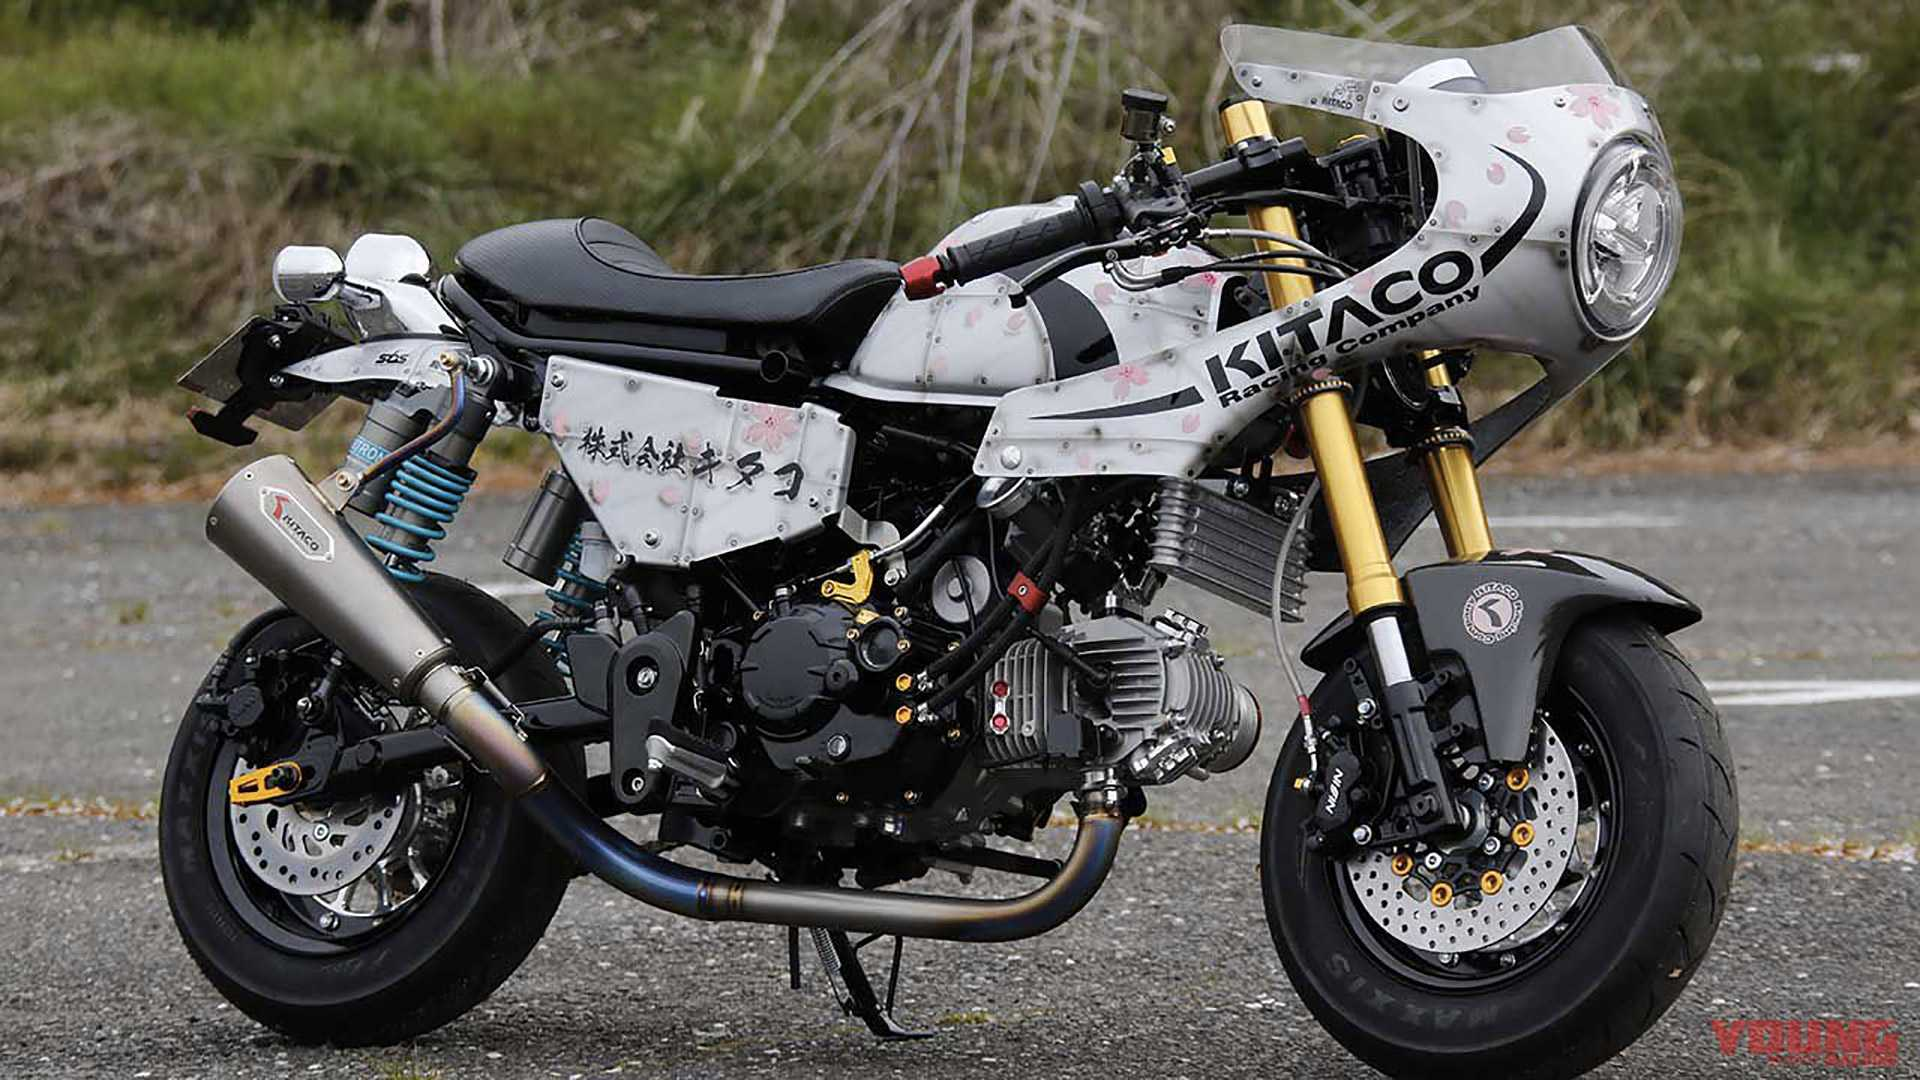 Can A Café Racer Be Adorable? If It's A Monkey, It Totally Can!